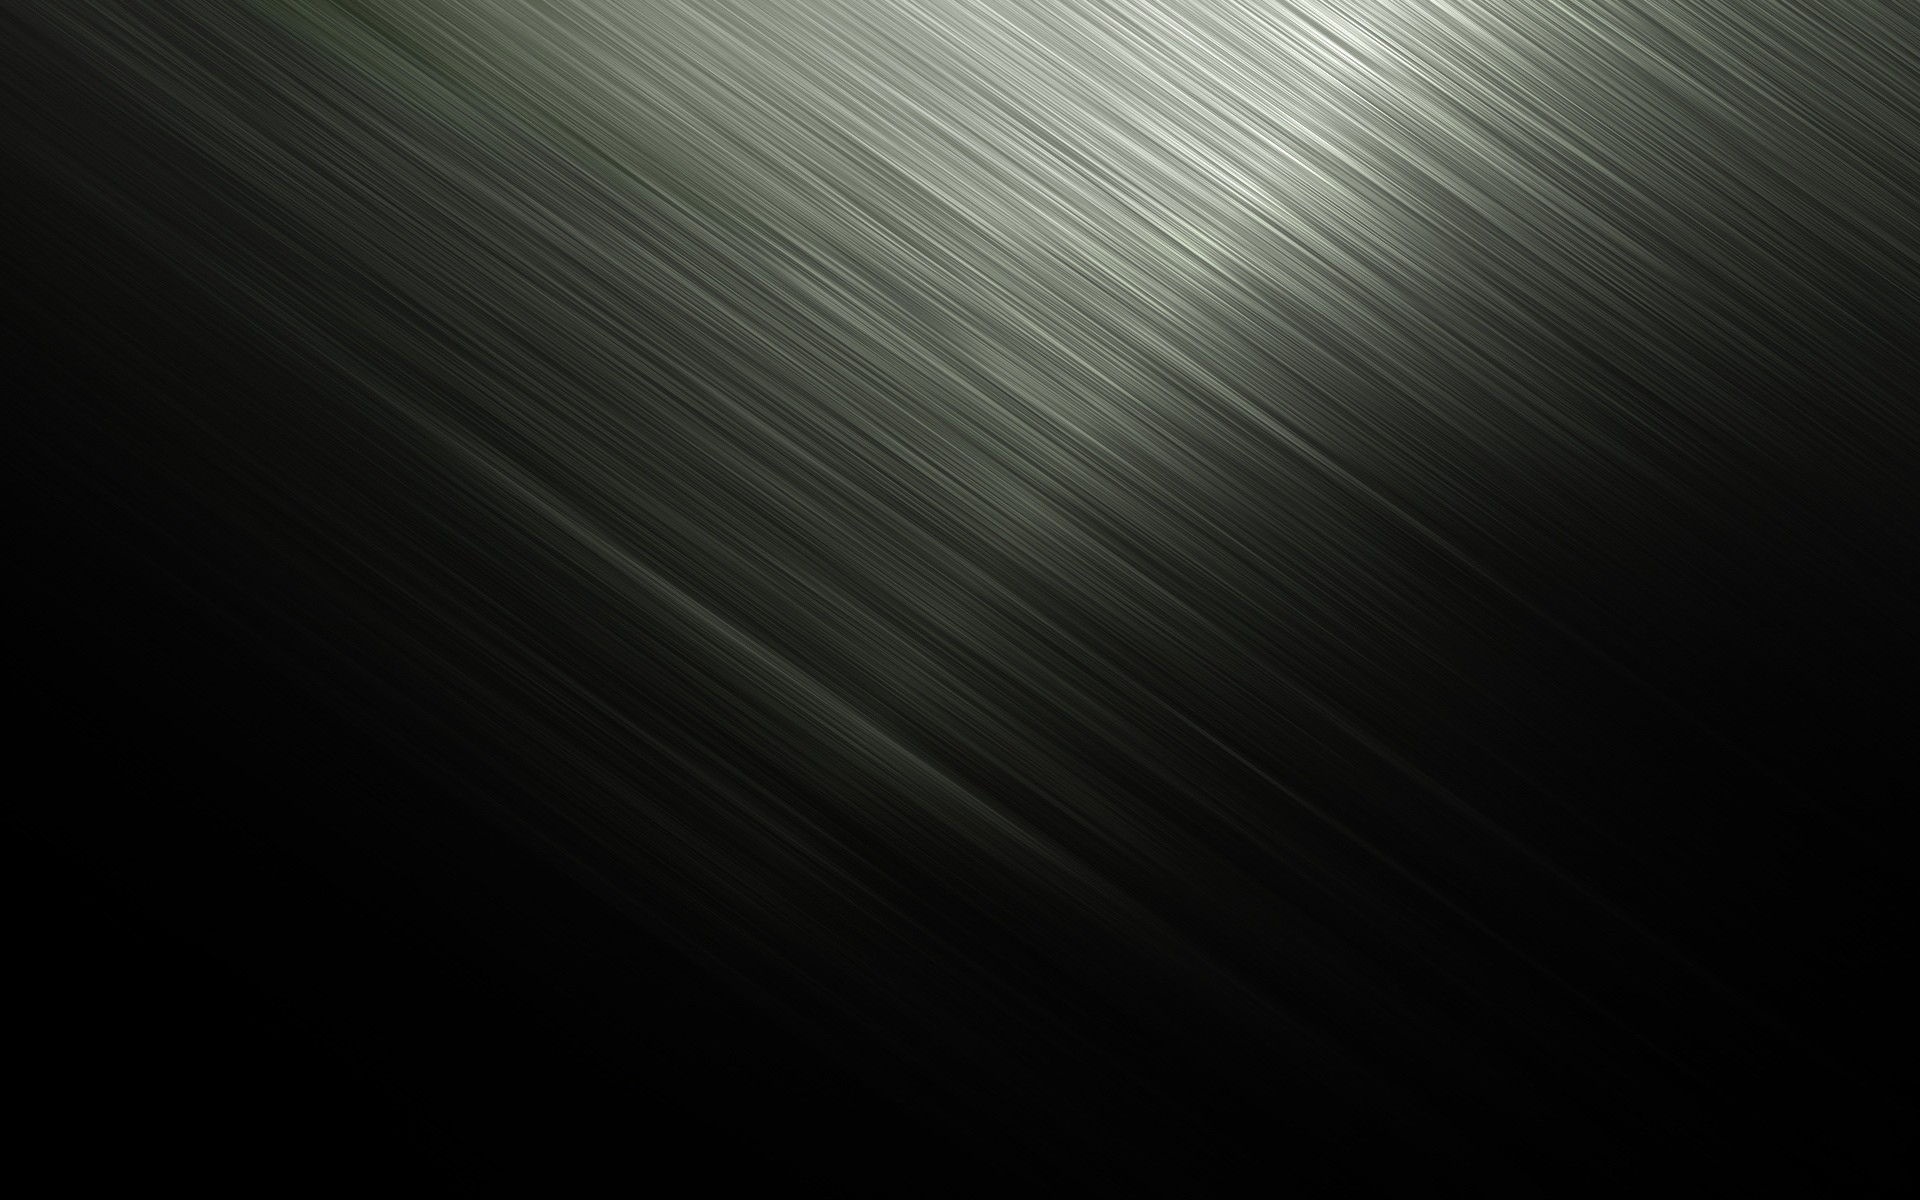 Download Abstract Black Wallpaper 1920x1200 | Wallpoper ...